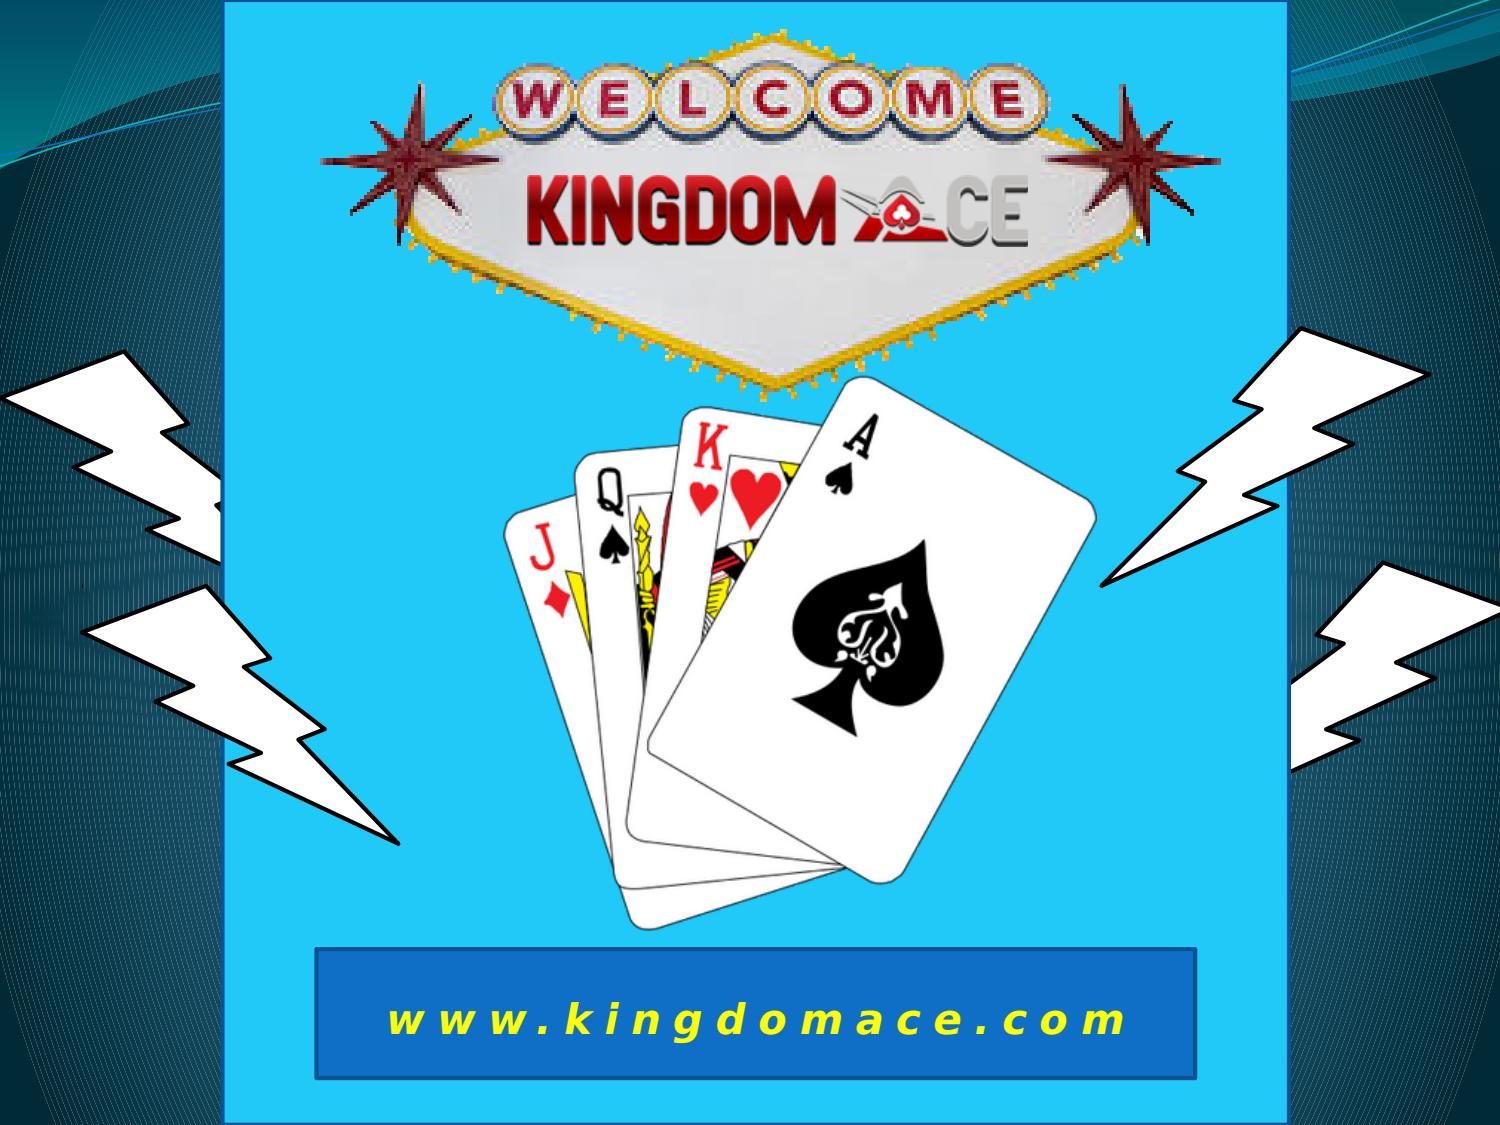 Kingdom ace is a new casino site and gives the best offer to play online casino games. Ple...